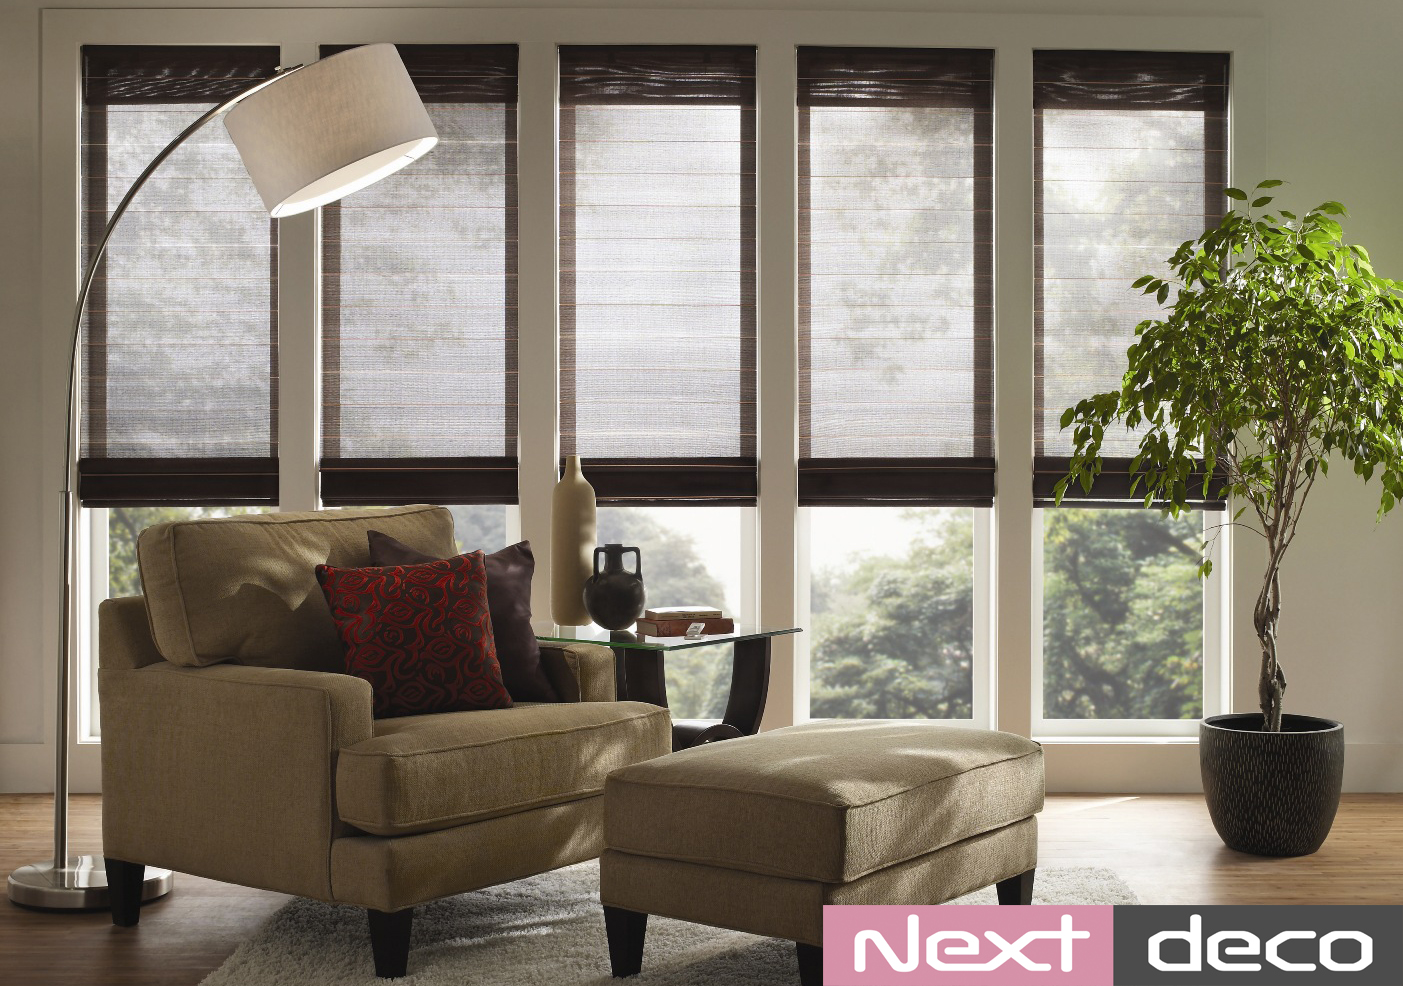 lutron-cortina-decoracion-nextdeco-WovenWood-CherasWalnut copia.jpg